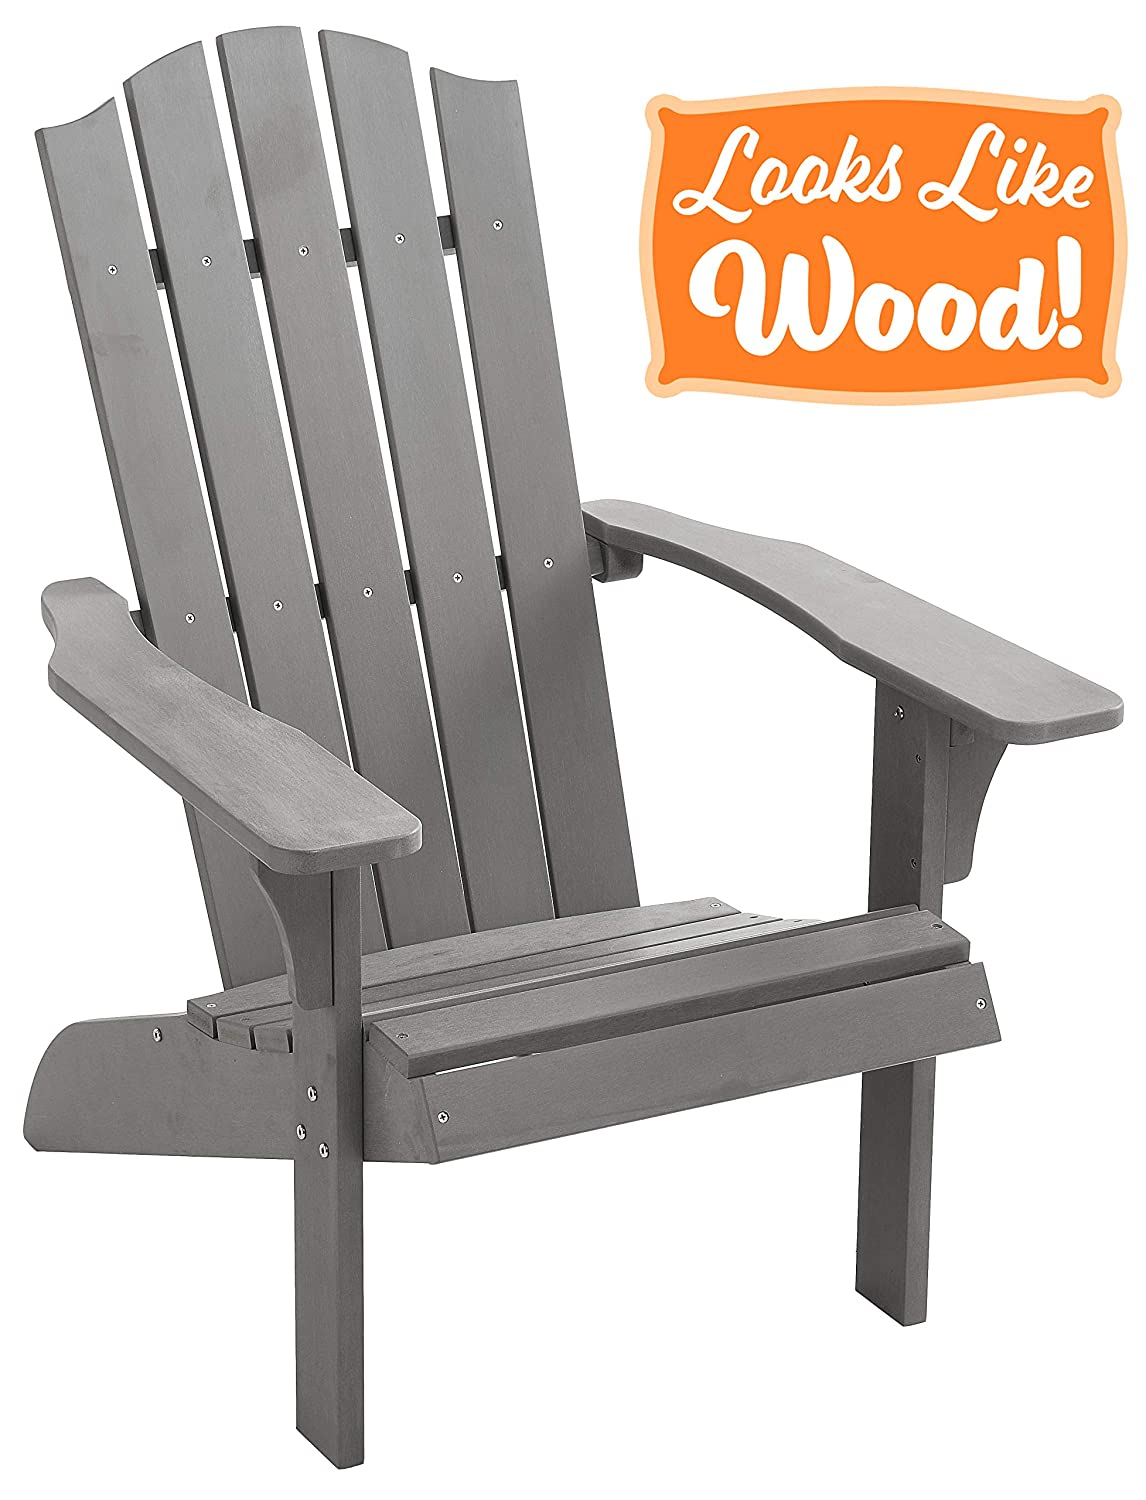 PolyTEAK Element Faux Wood Poly Adirondack Chair, Gray Adult-Size, Weather Resistant, Made from Plastic